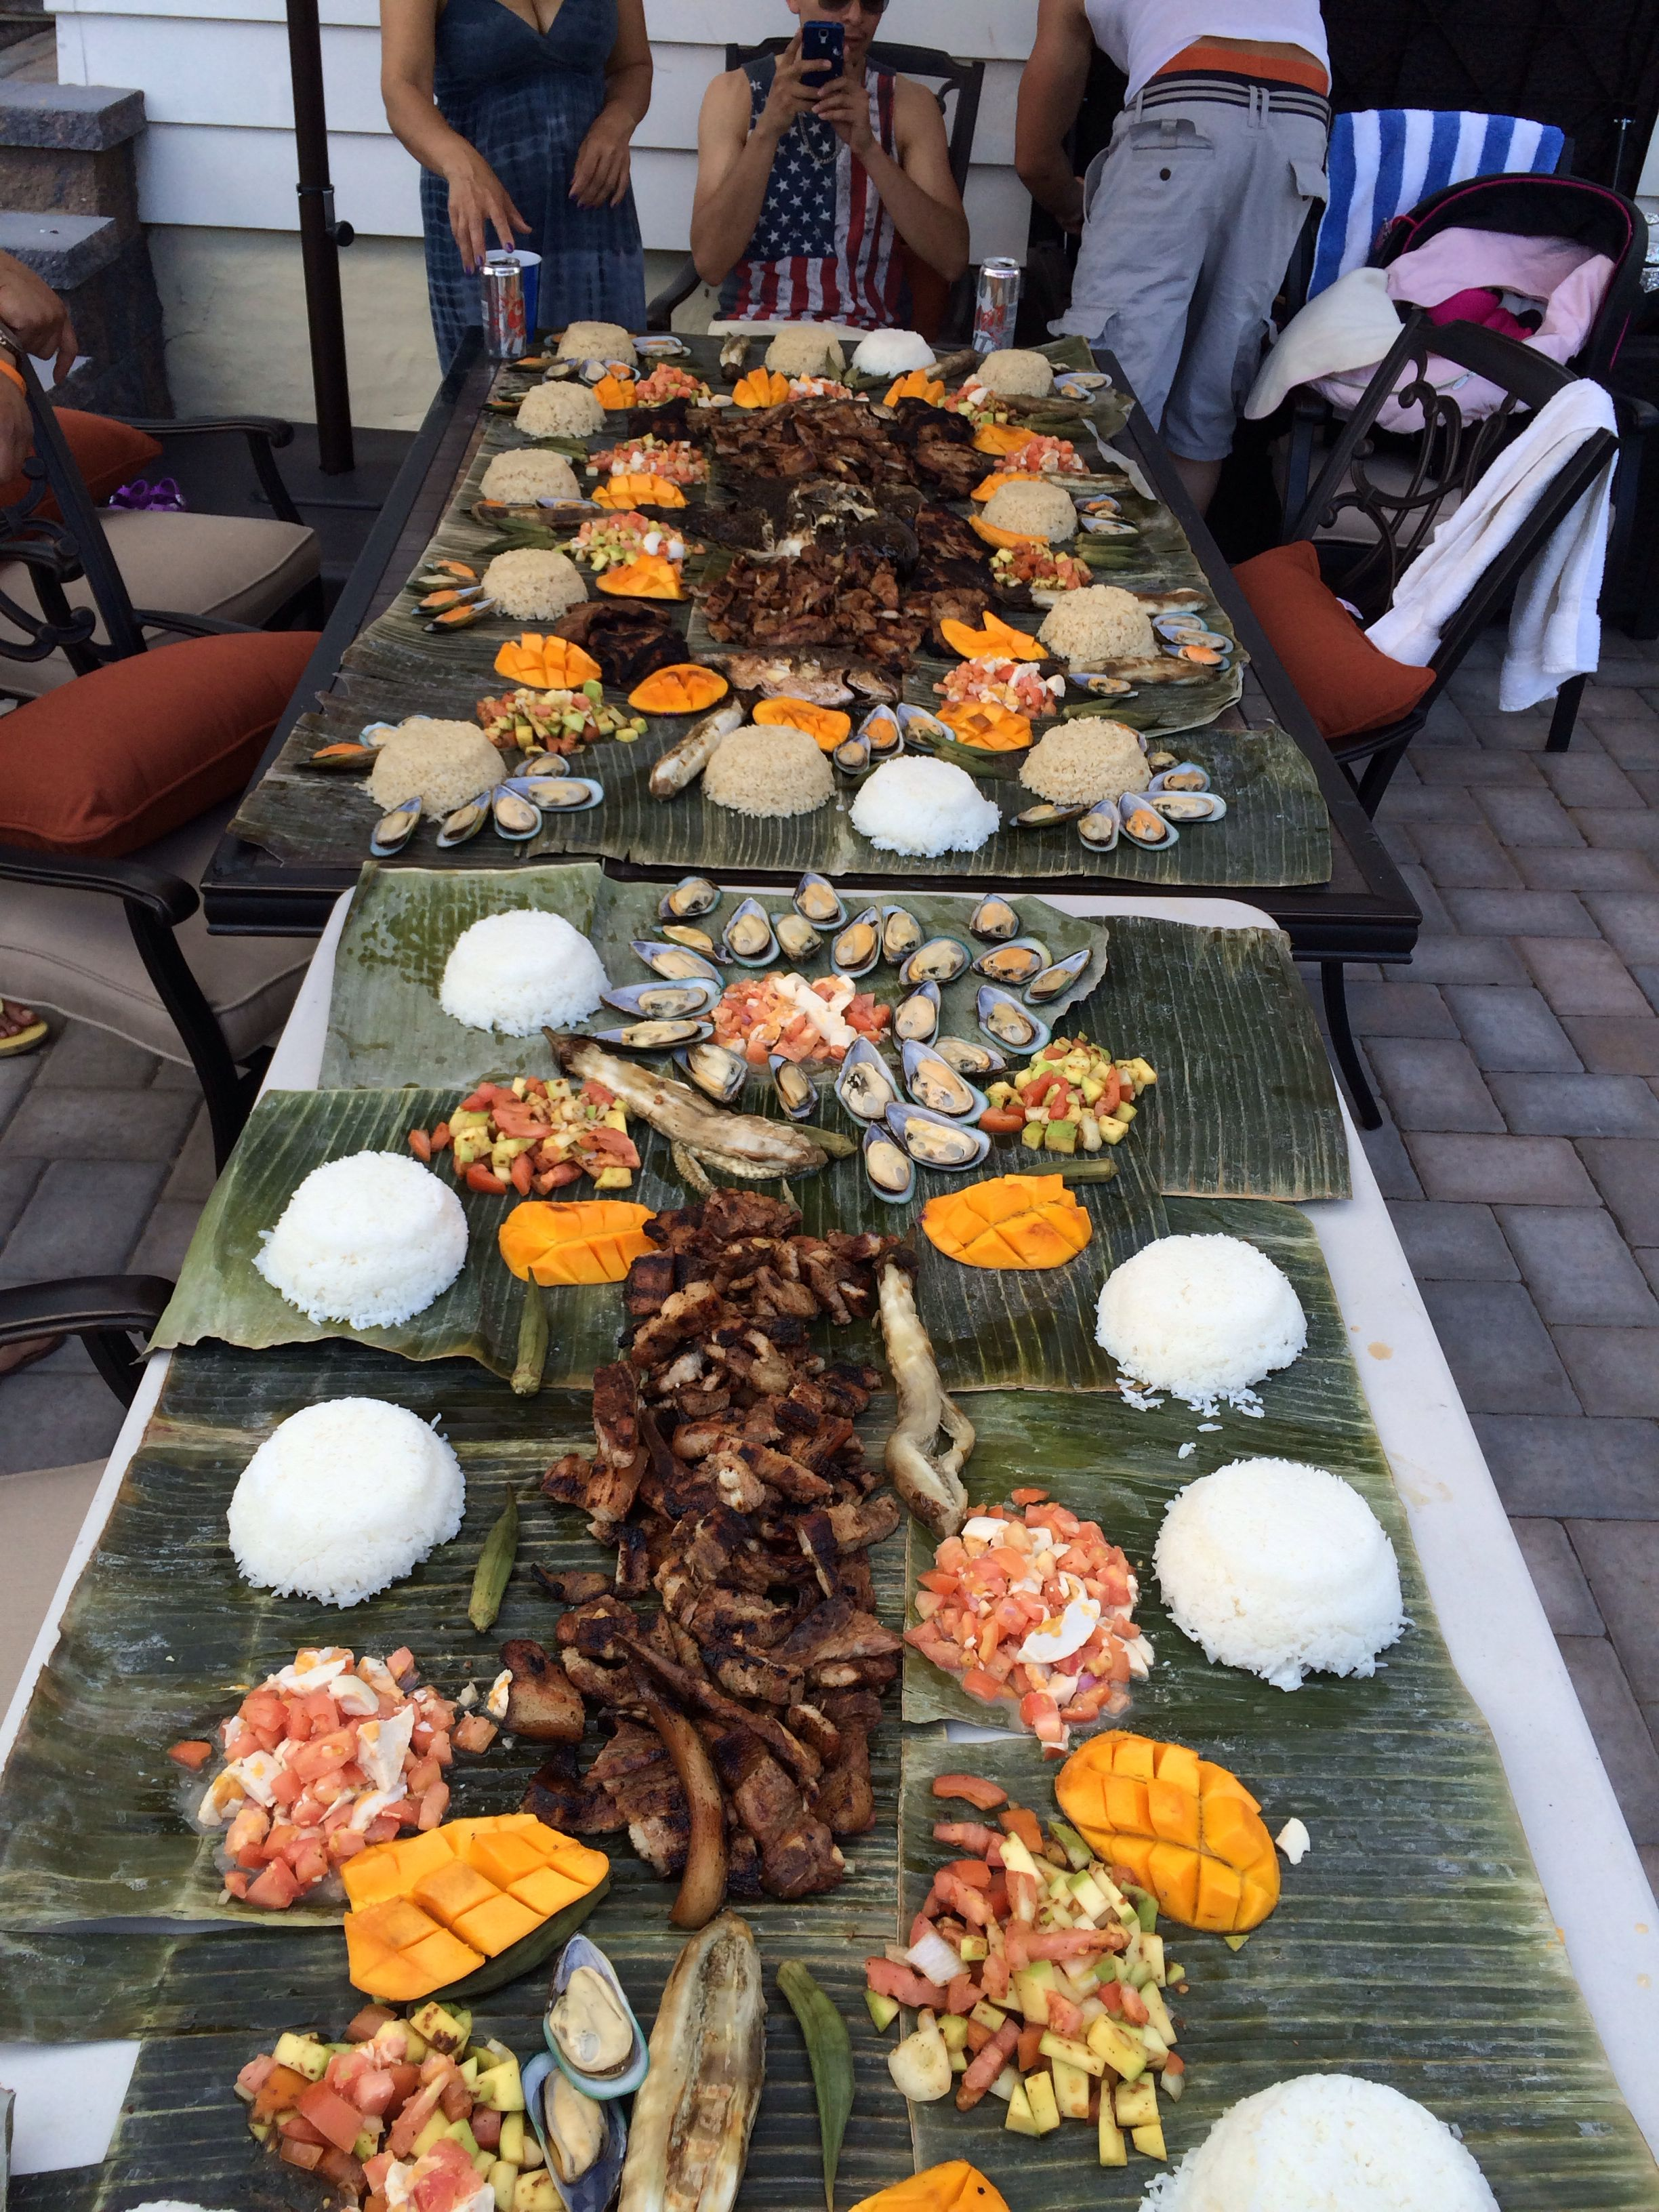 Kamayan pinoy style Filipino food party, Boodle fight